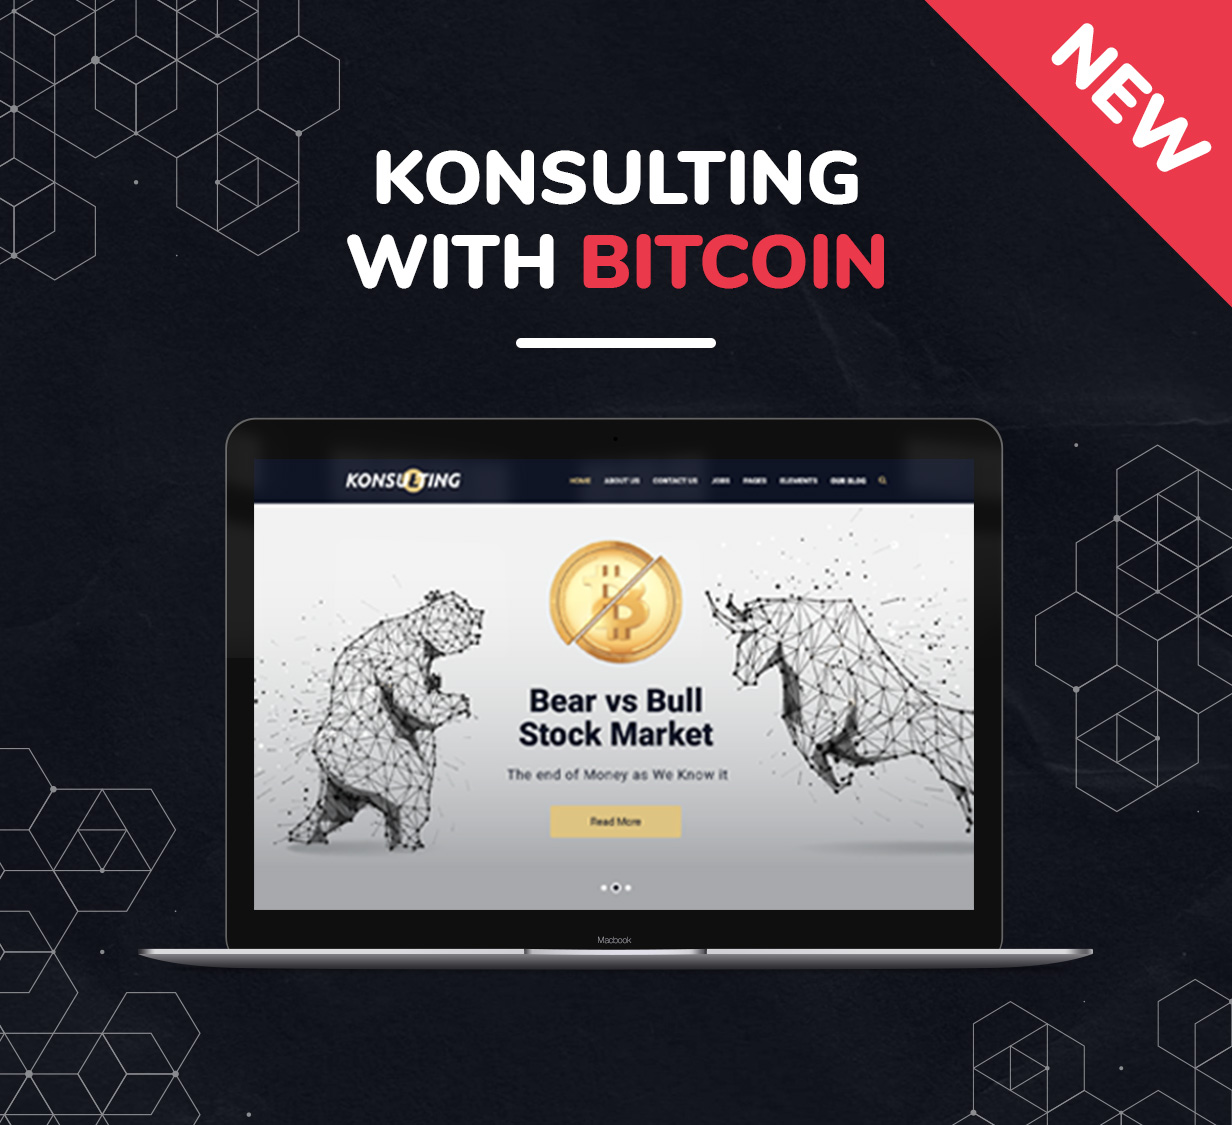 Konsulting - Consulting & Bitcoin WordPress Theme - 2